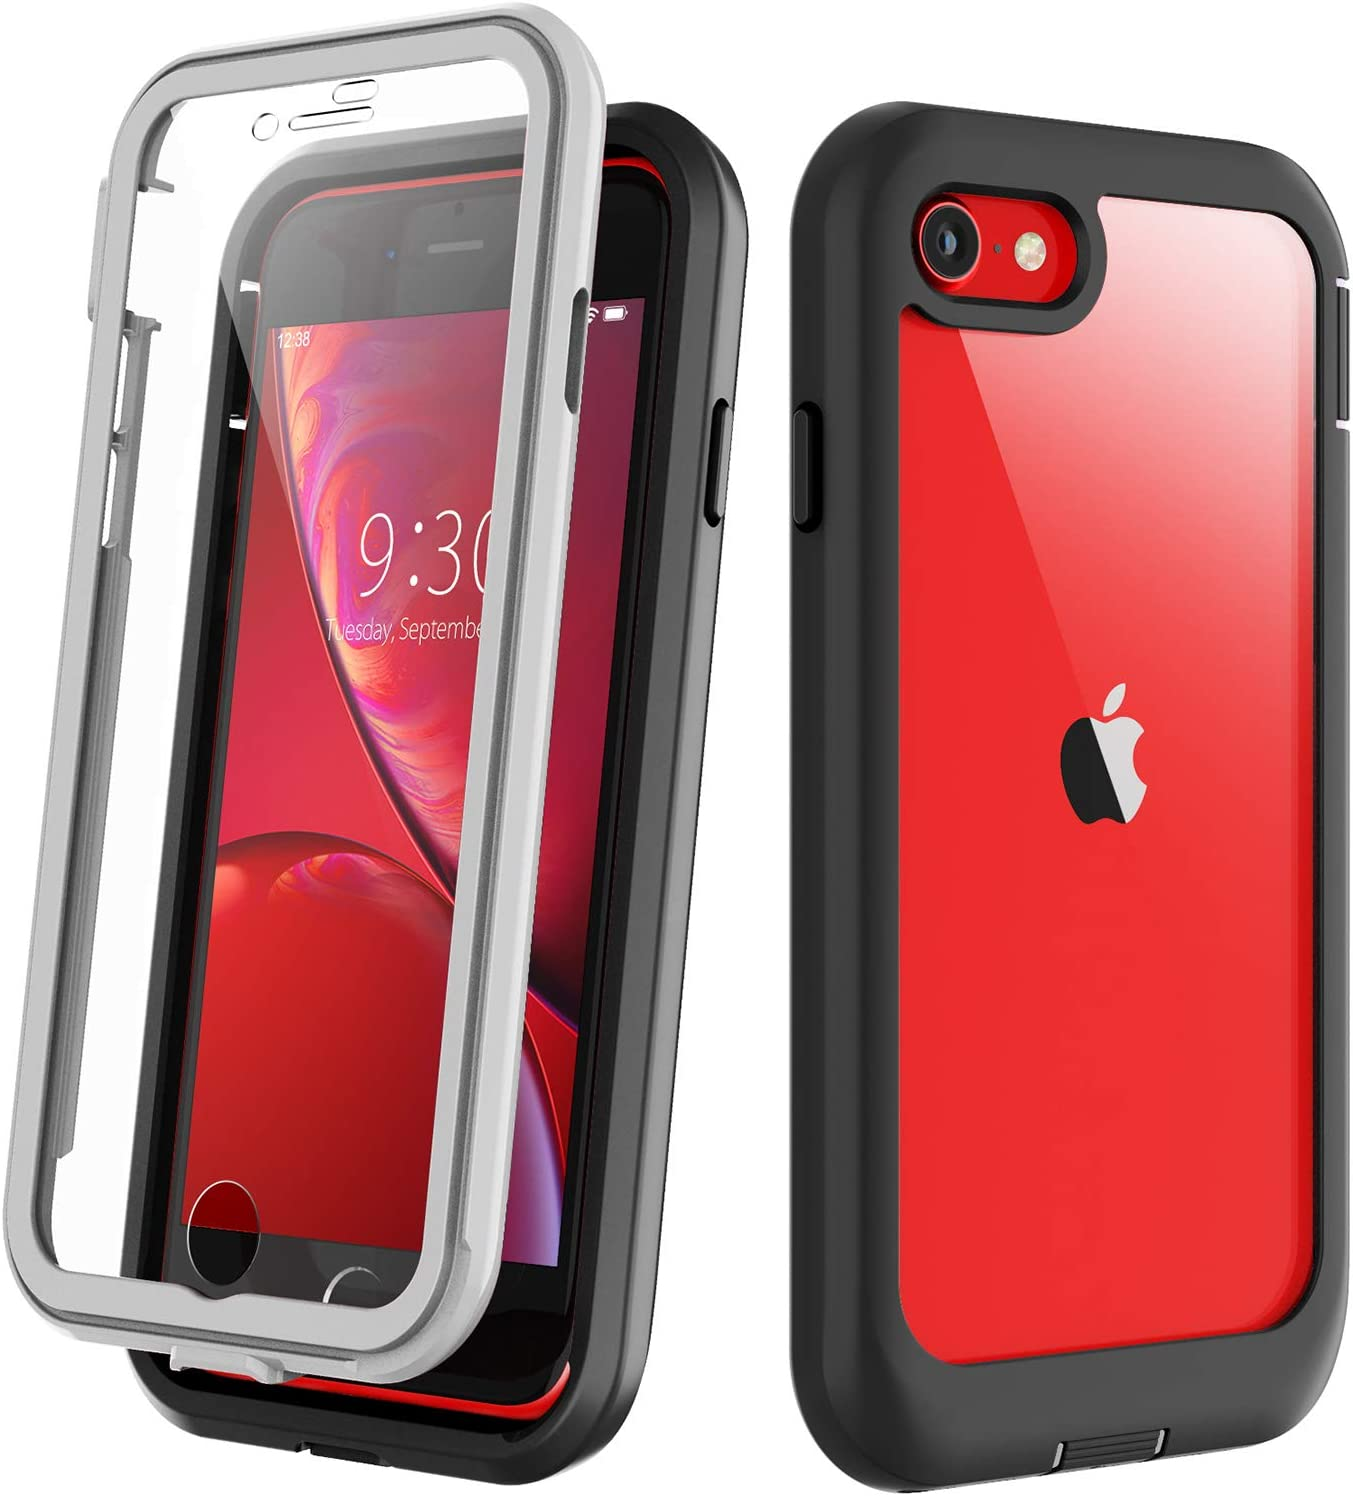 Eonfine for iPhone SE 2020 Case/iPhone 7/8 Case, Full-Body with Built-in Screen Protector Rugged Clear Shockproof Case for iPhone 7/8/iPhone SE 2nd Generation 4.7inch (Black/Clear)